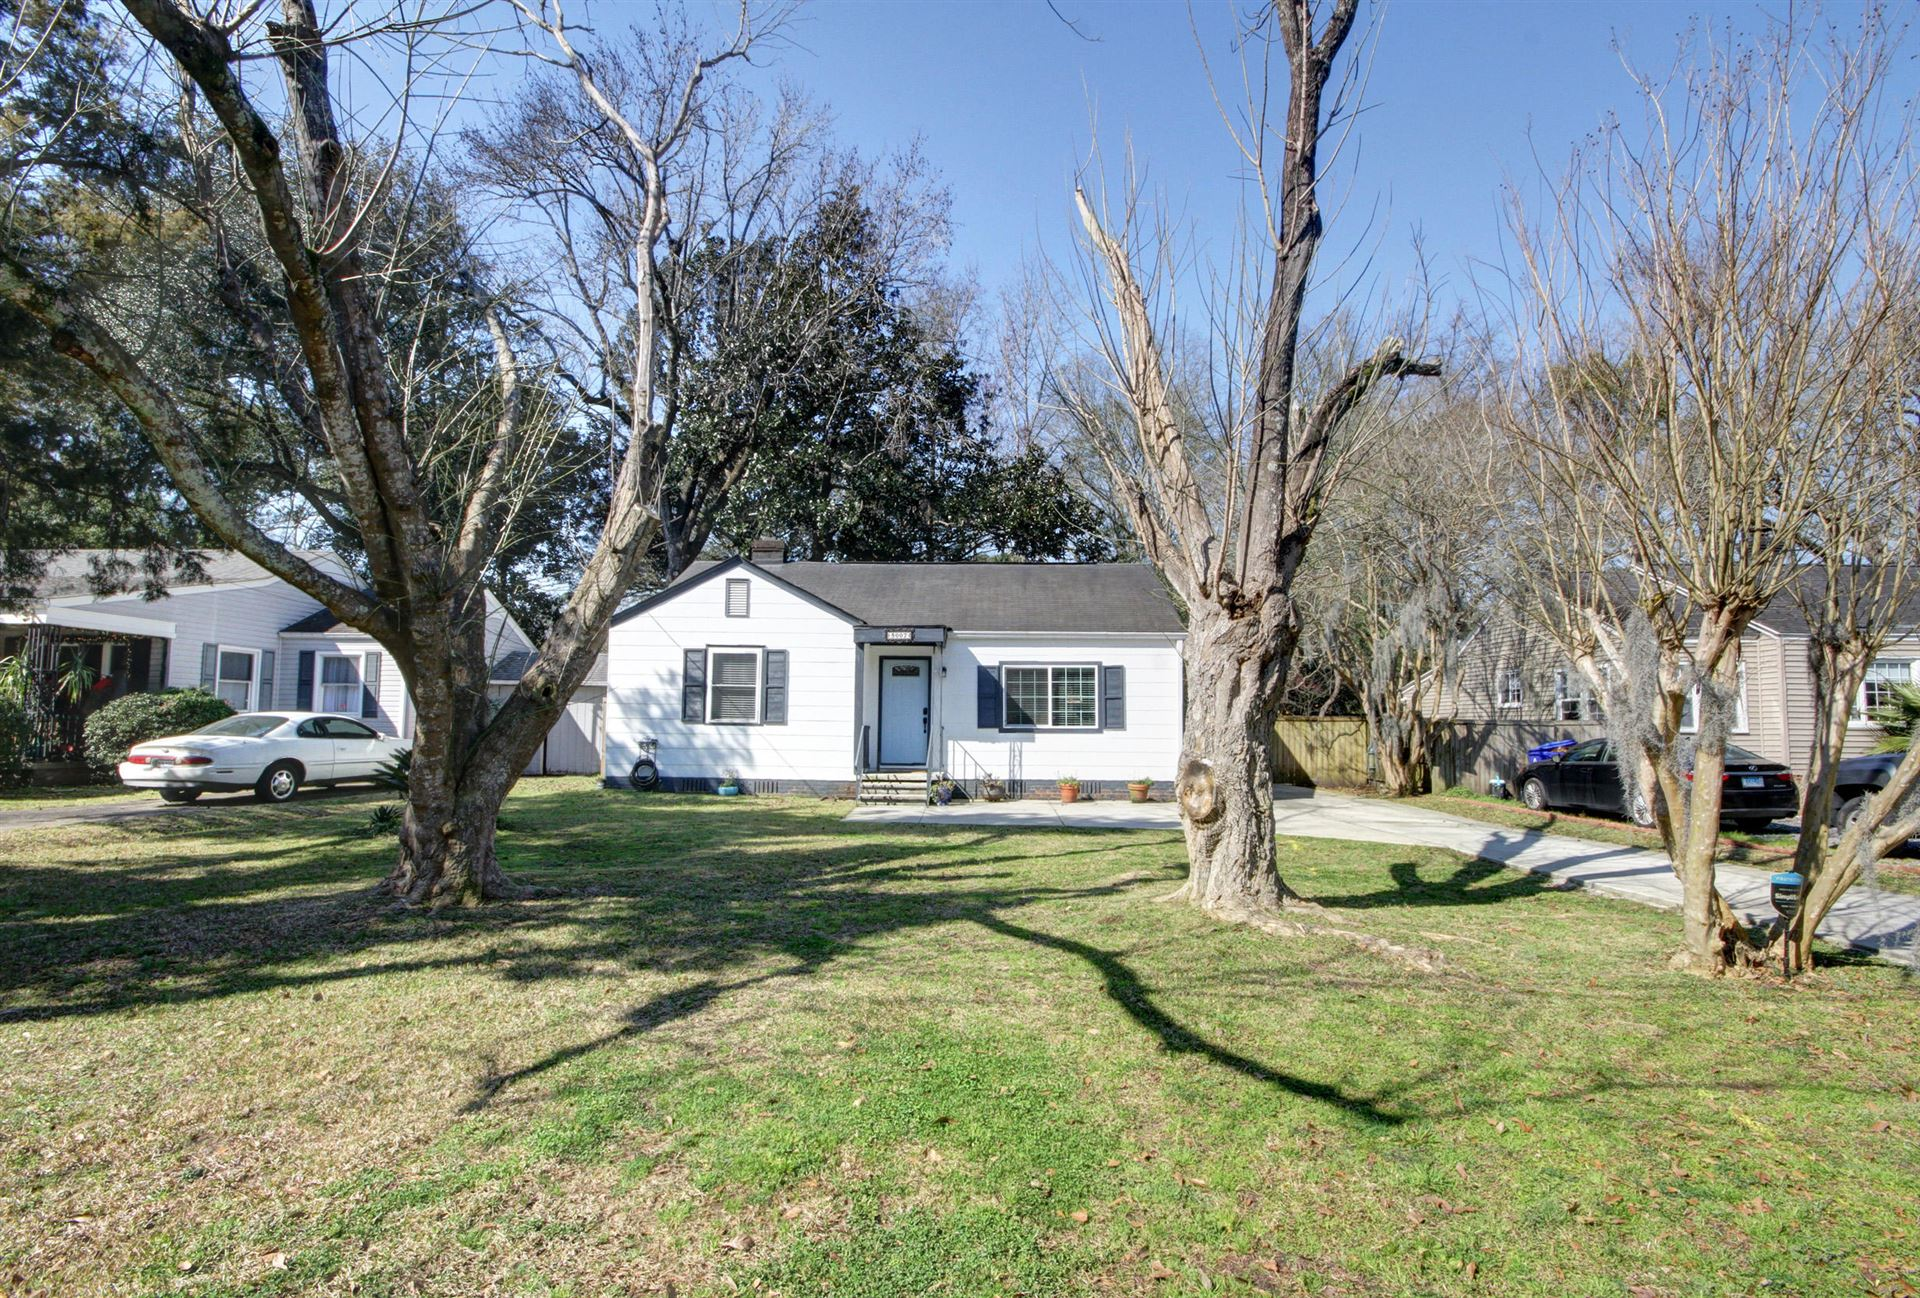 Photo of 5007 Converse Street, North Charleston, SC 29405 (MLS # 21005162)